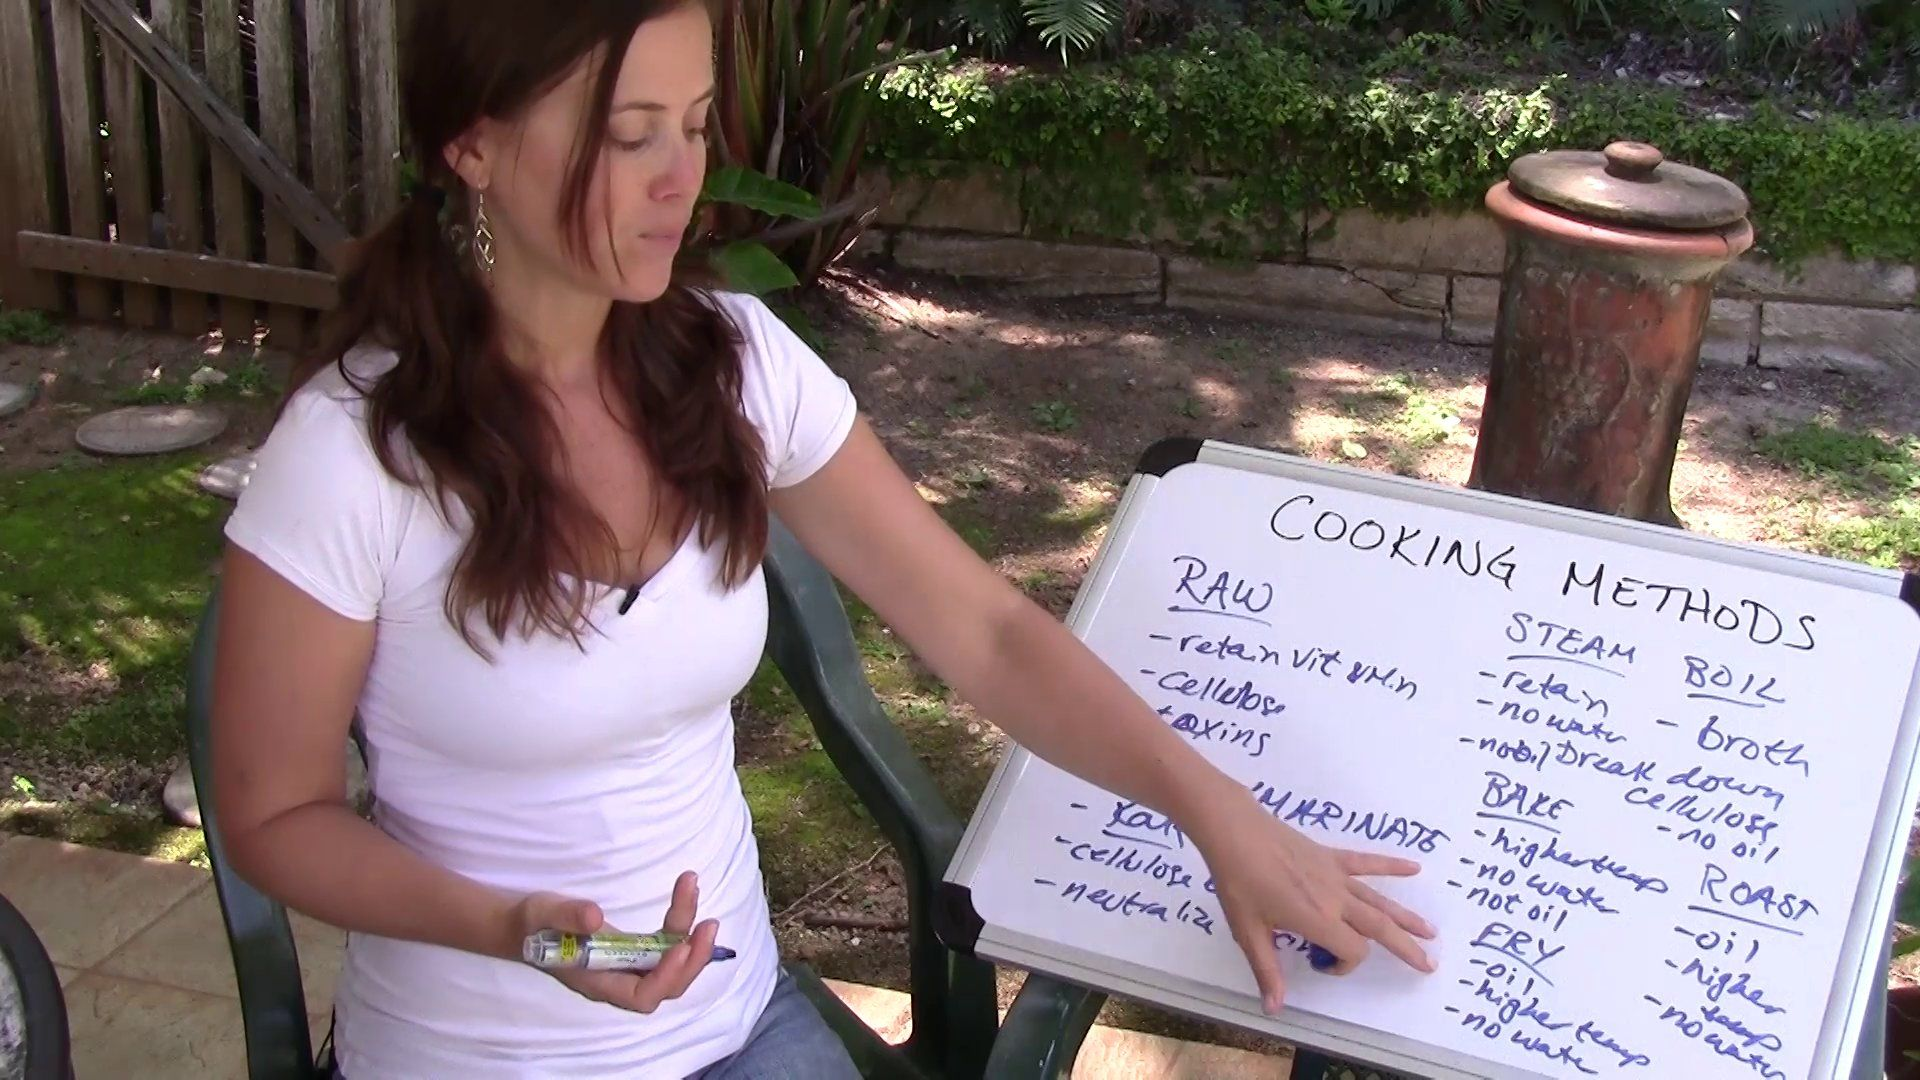 Lesson 8: Cooking Methods